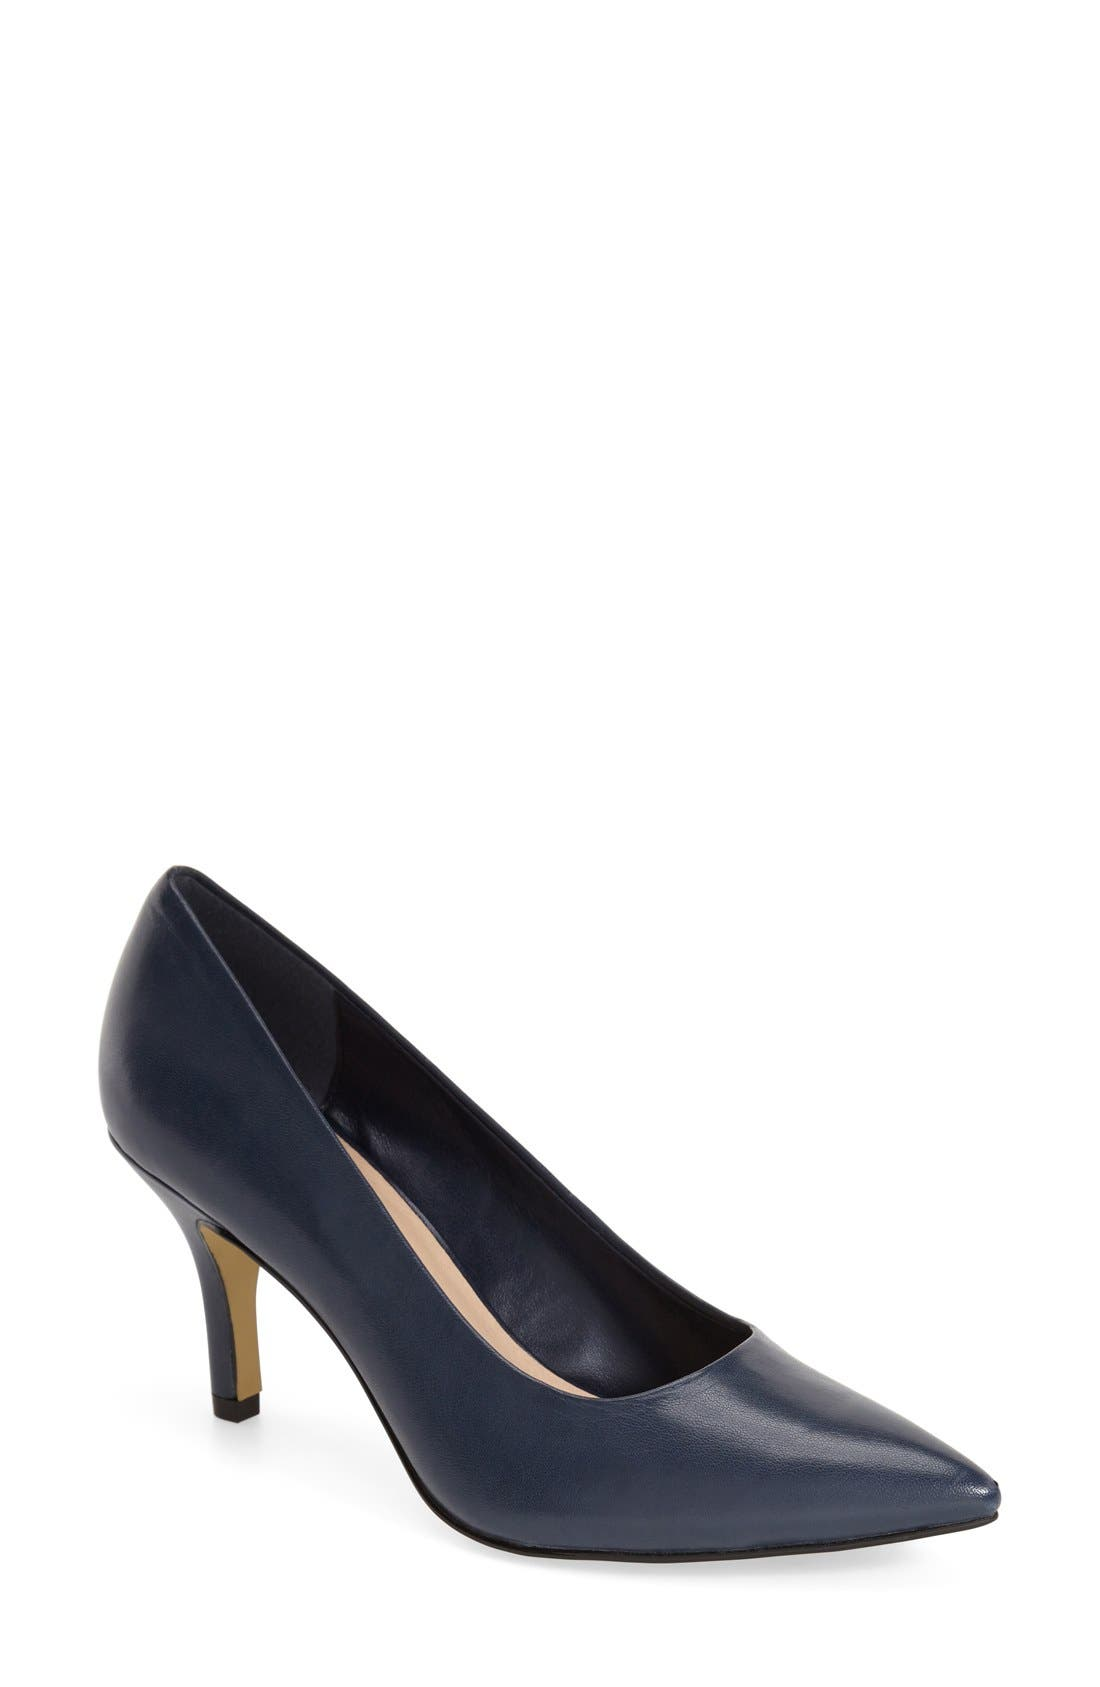 'Define' Pointy Toe Pump,                             Main thumbnail 1, color,                             NAVY LEATHER